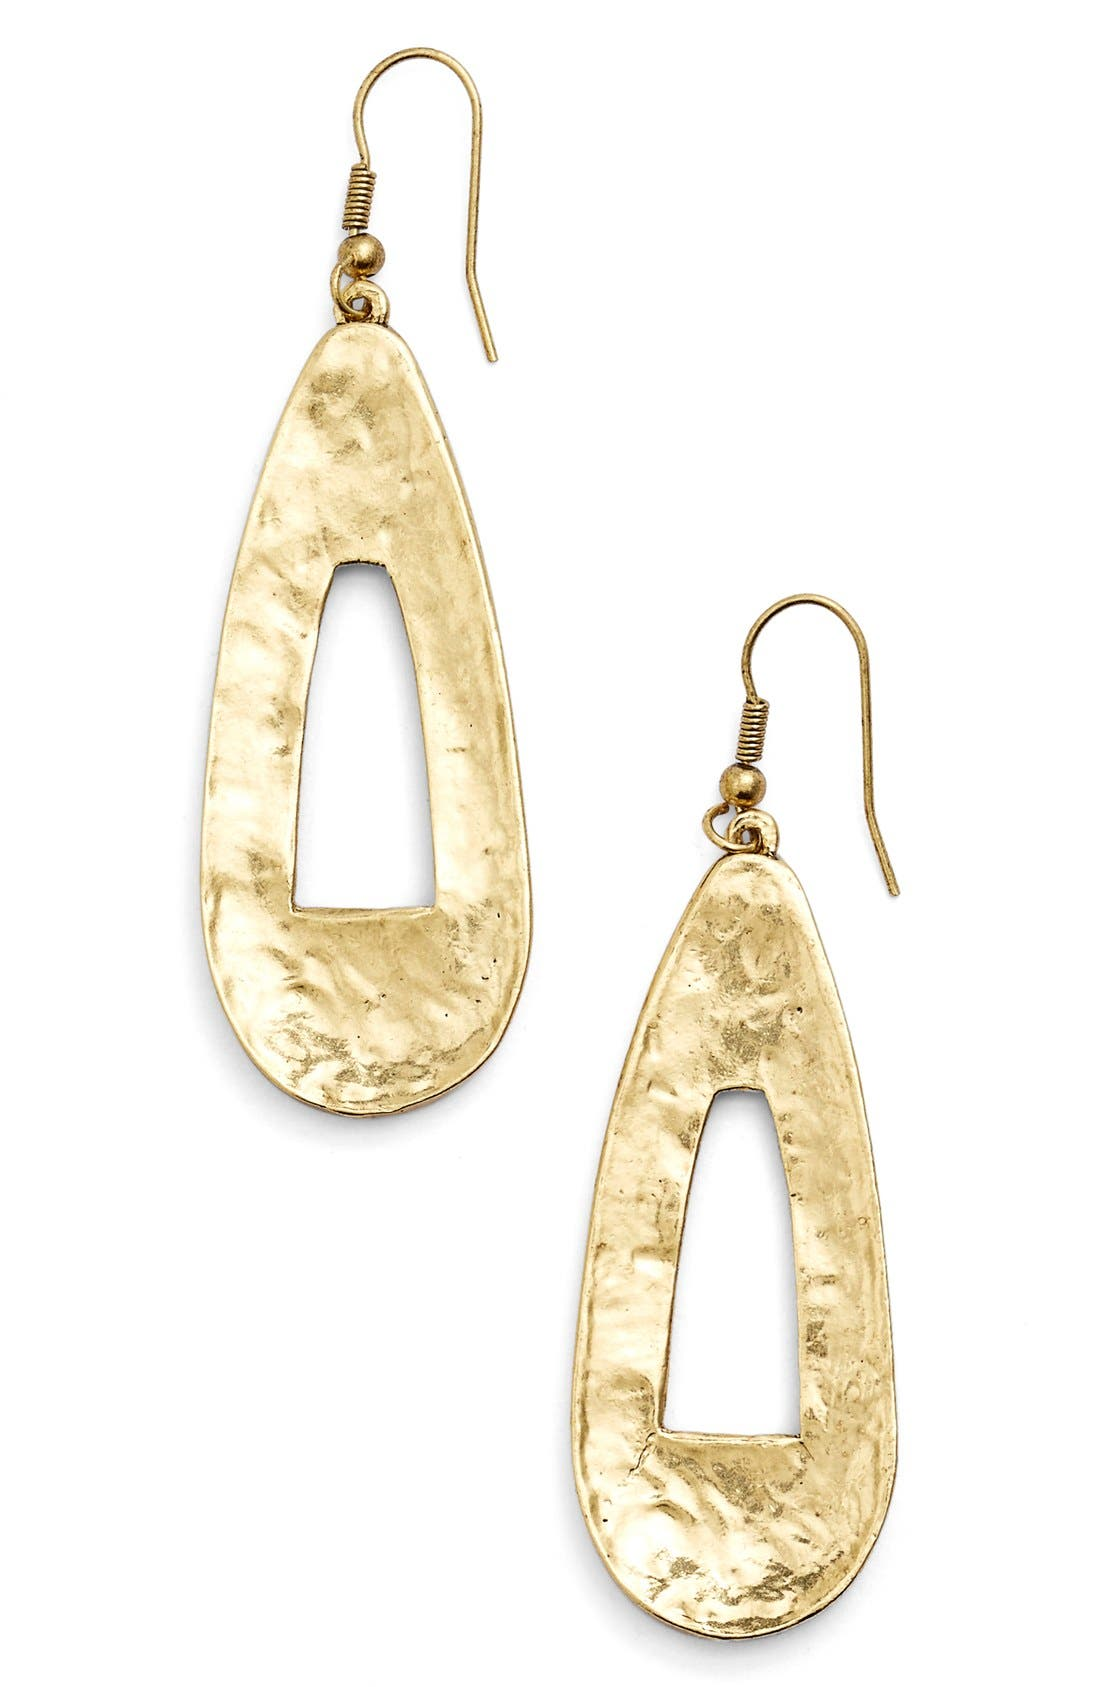 KARINE SULTAN Open Teardrop Earrings